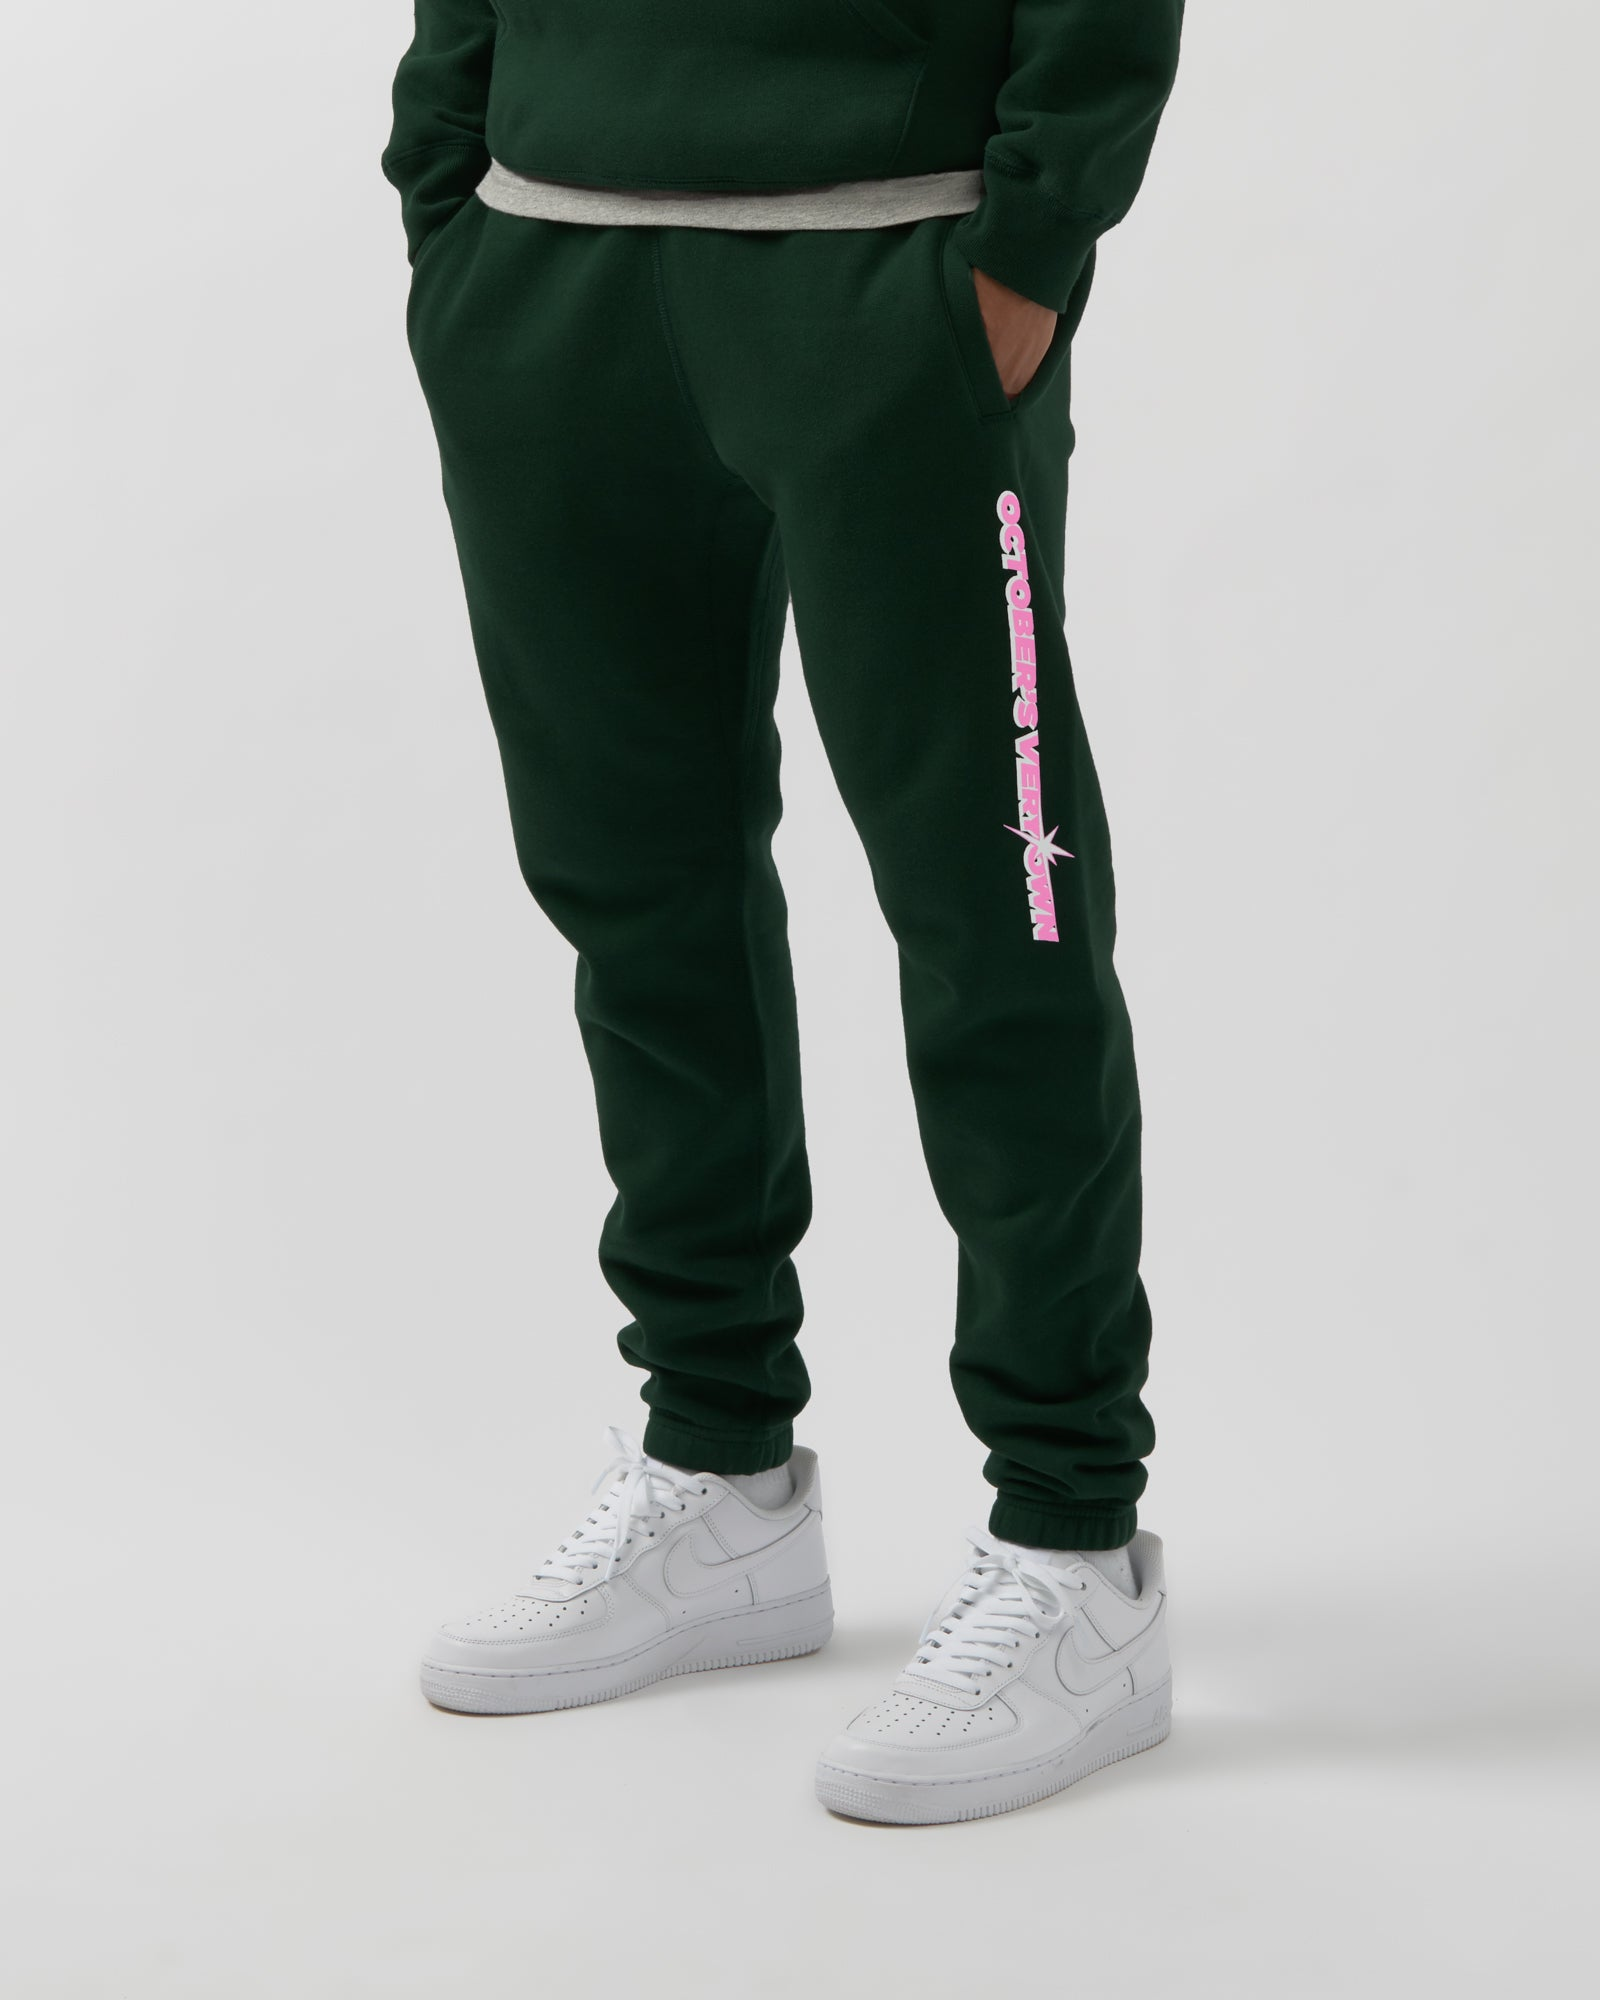 SHINING WORDMARK SWEATPANT - PINE IMAGE #3